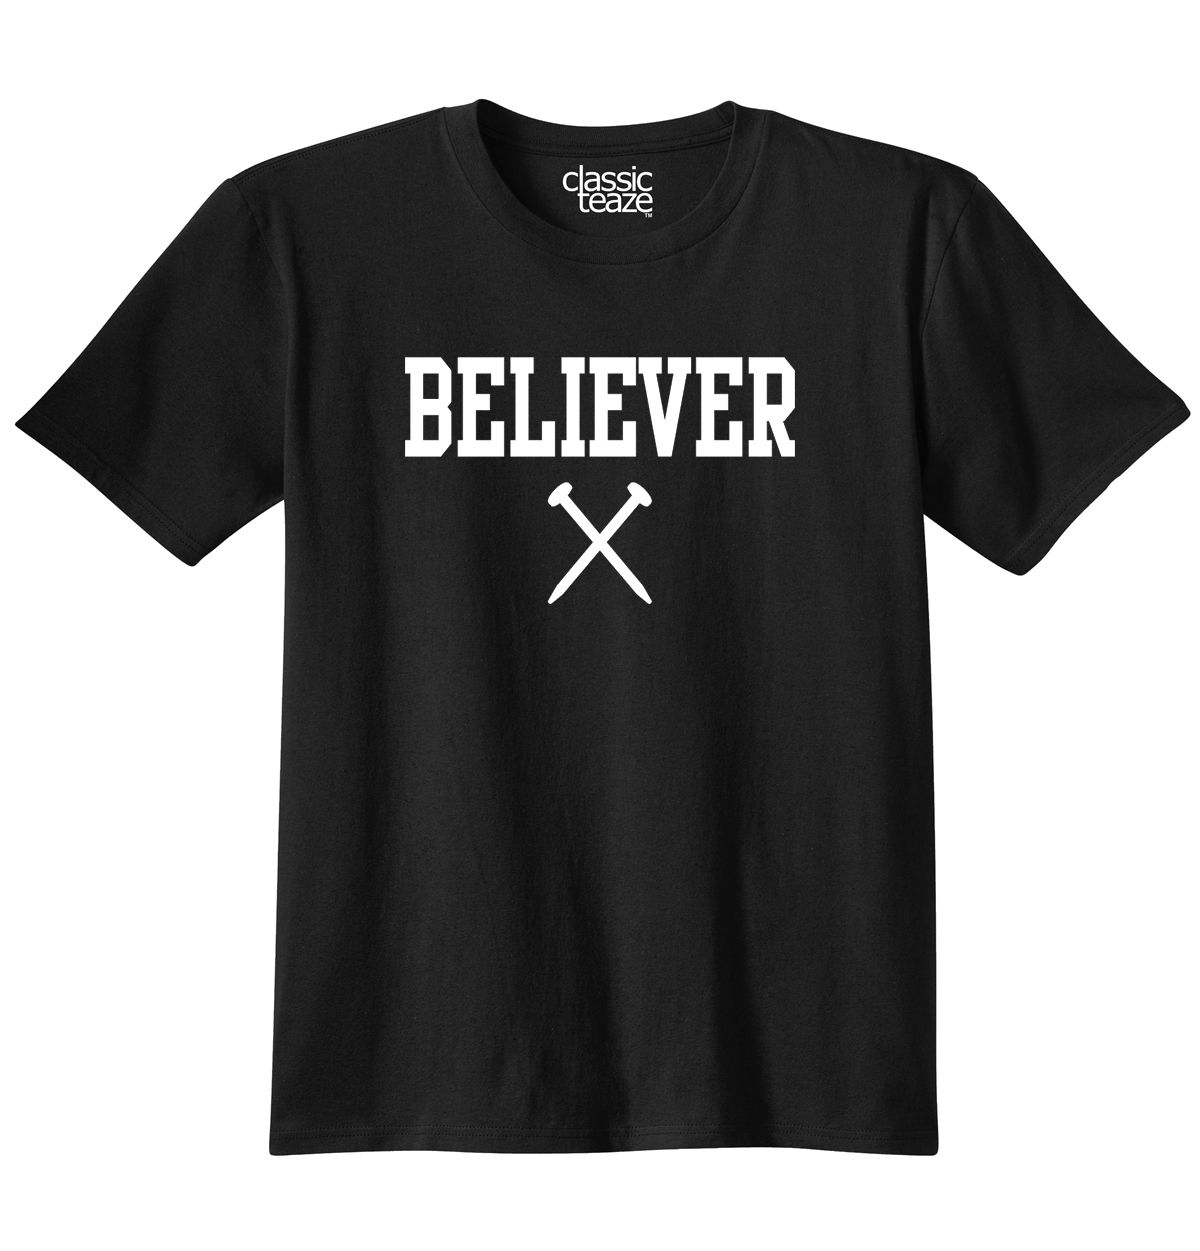 Believer Jesus Christ Christian Shirt Religious Gift Cool T Shirt Free shipping Tops t shirt Fashion Classic Unique gift in T Shirts from Men 39 s Clothing